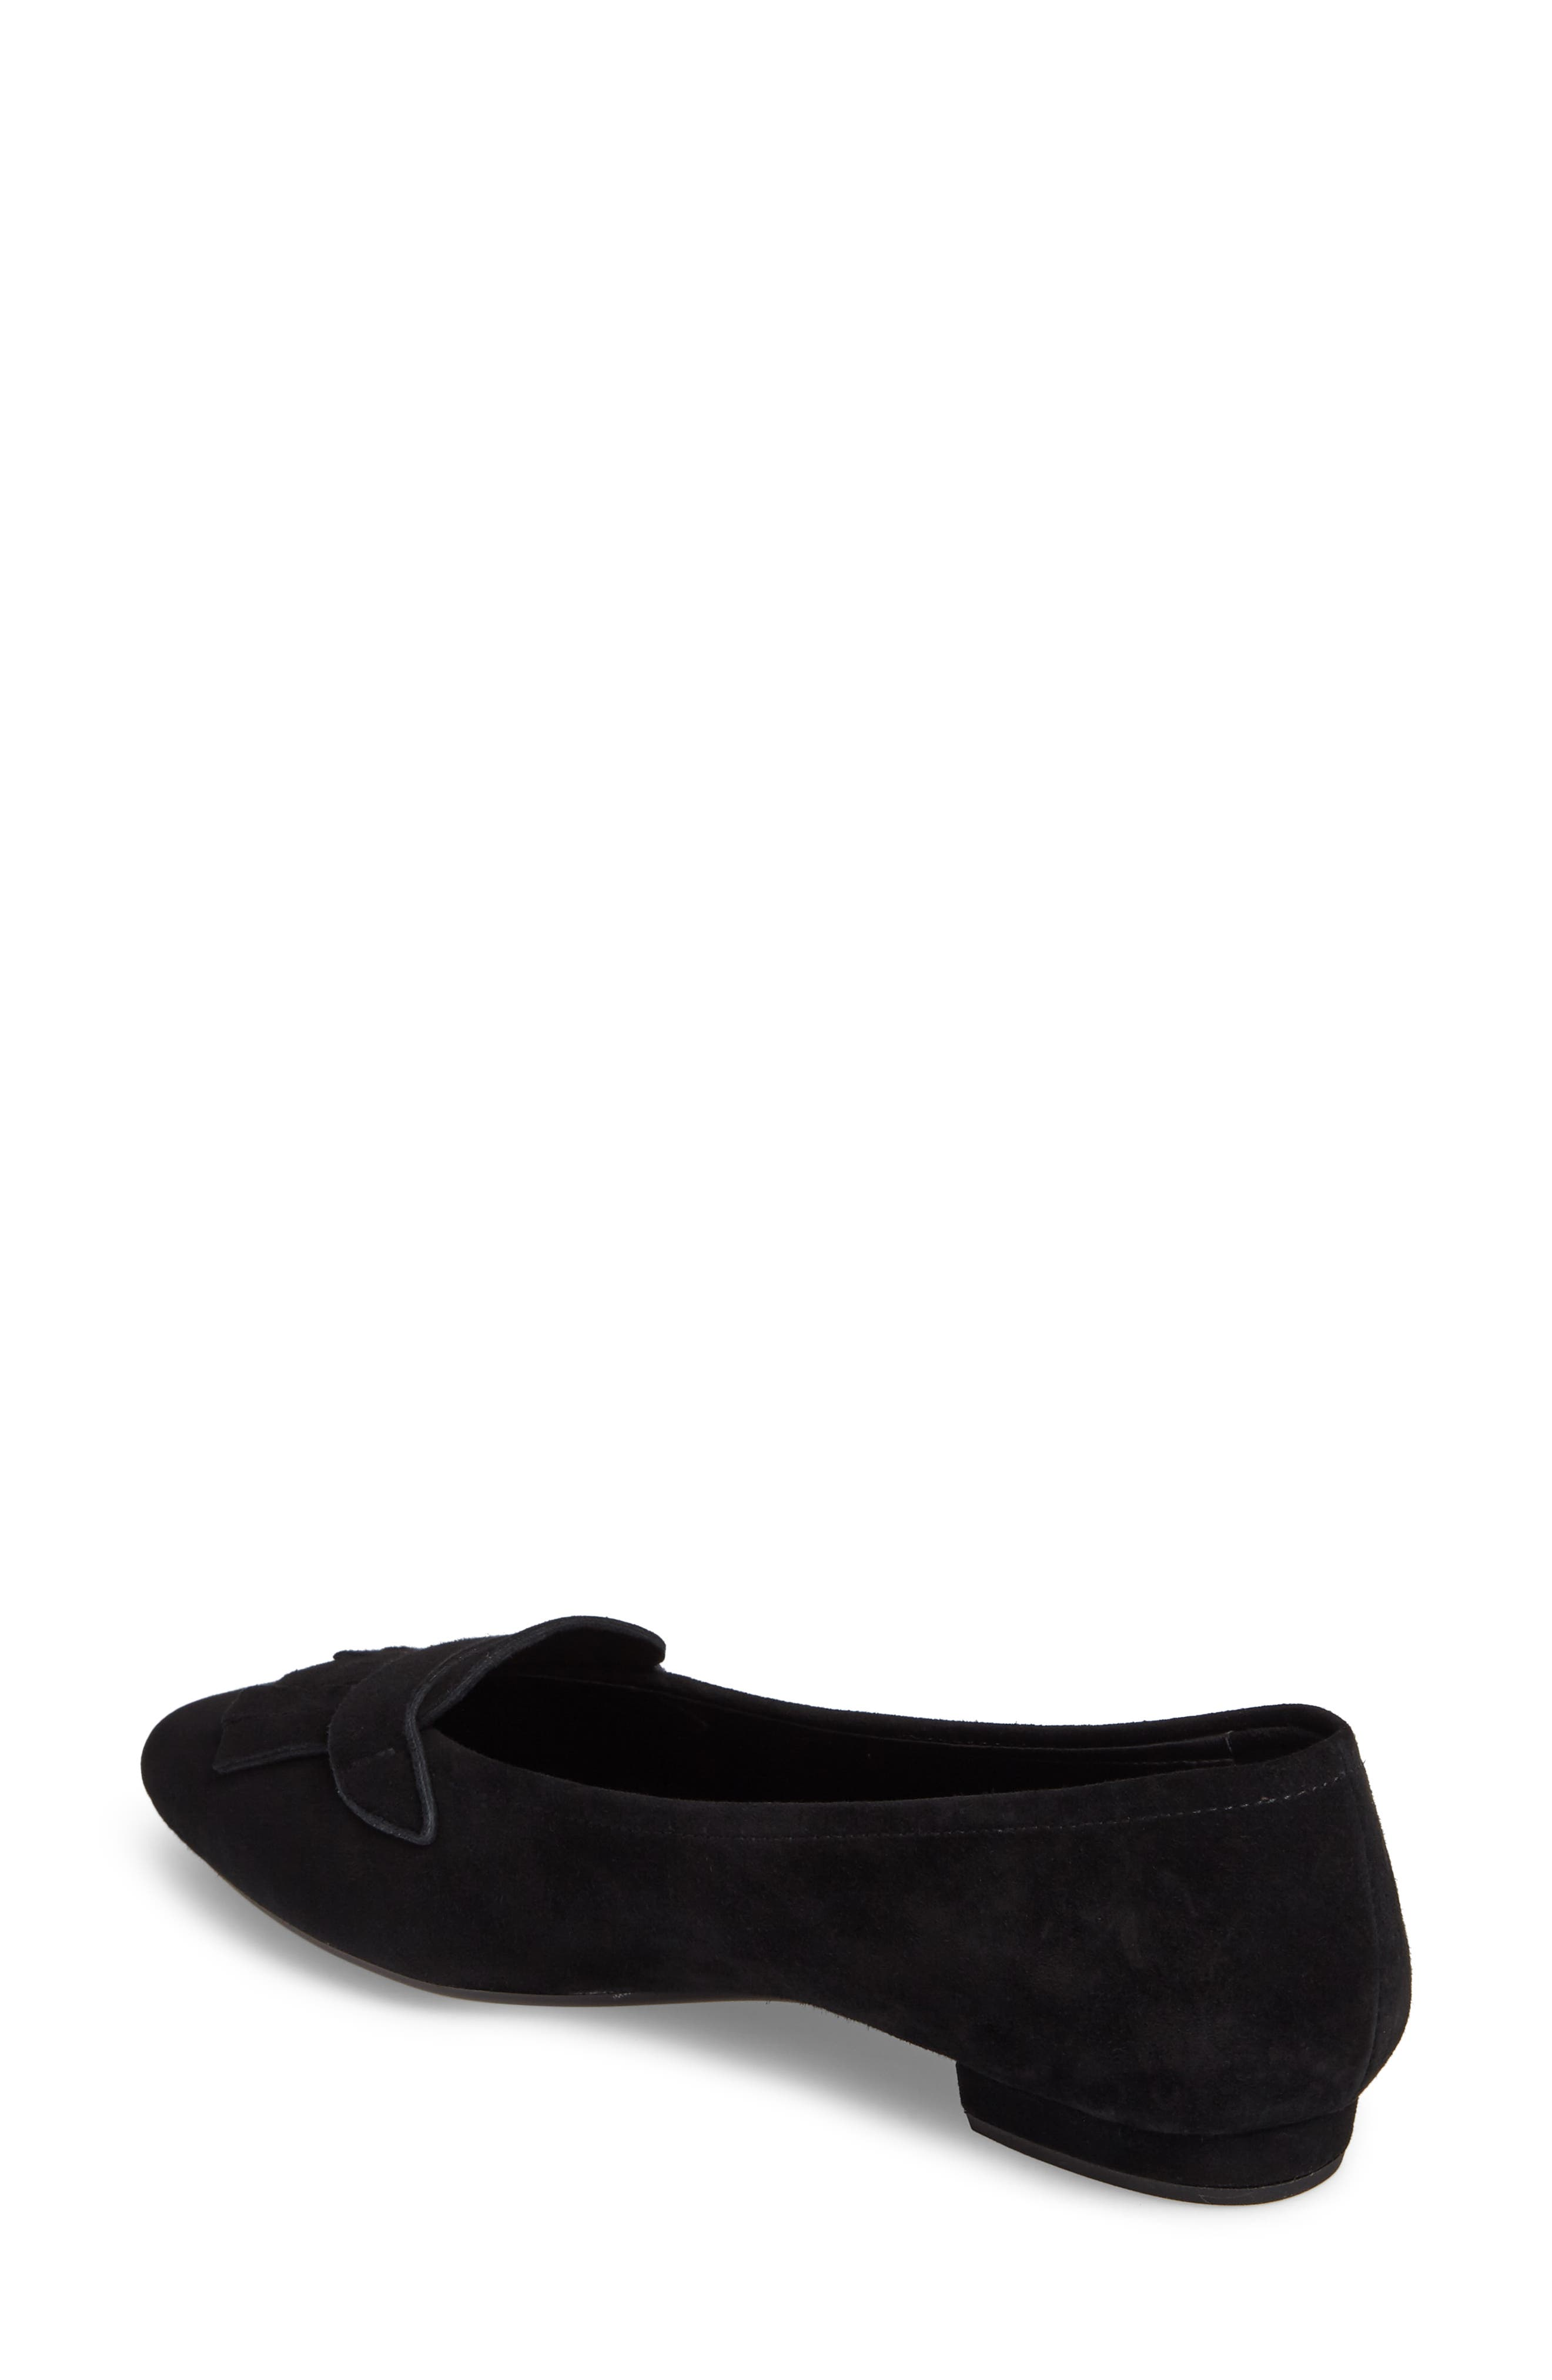 Gaea Loafer Flat,                             Alternate thumbnail 2, color,                             001